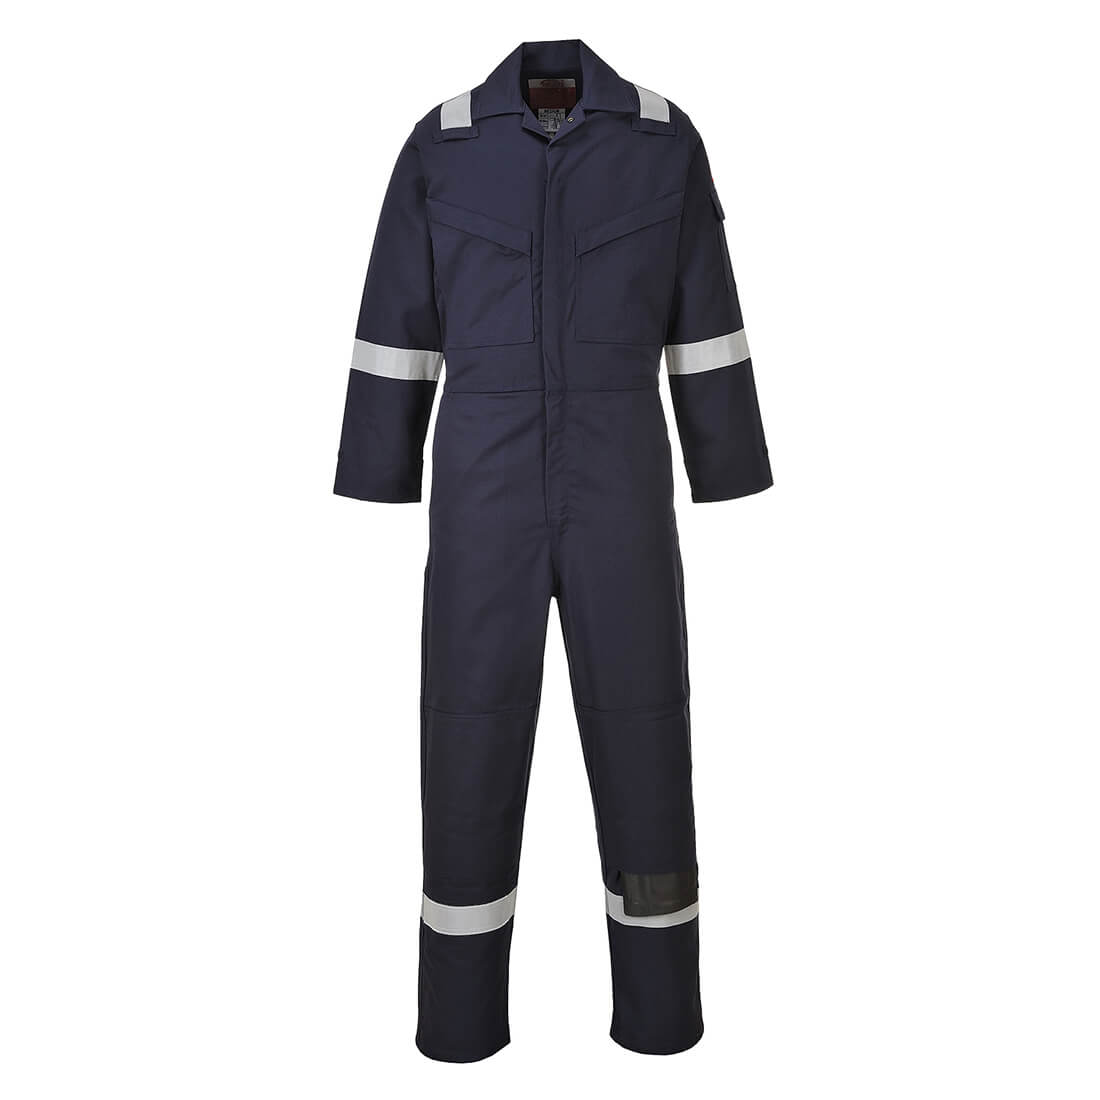 Image of Biz Flame Aberdeen Flame Resistant Antistatic Coverall Navy Blue 2XL 32""